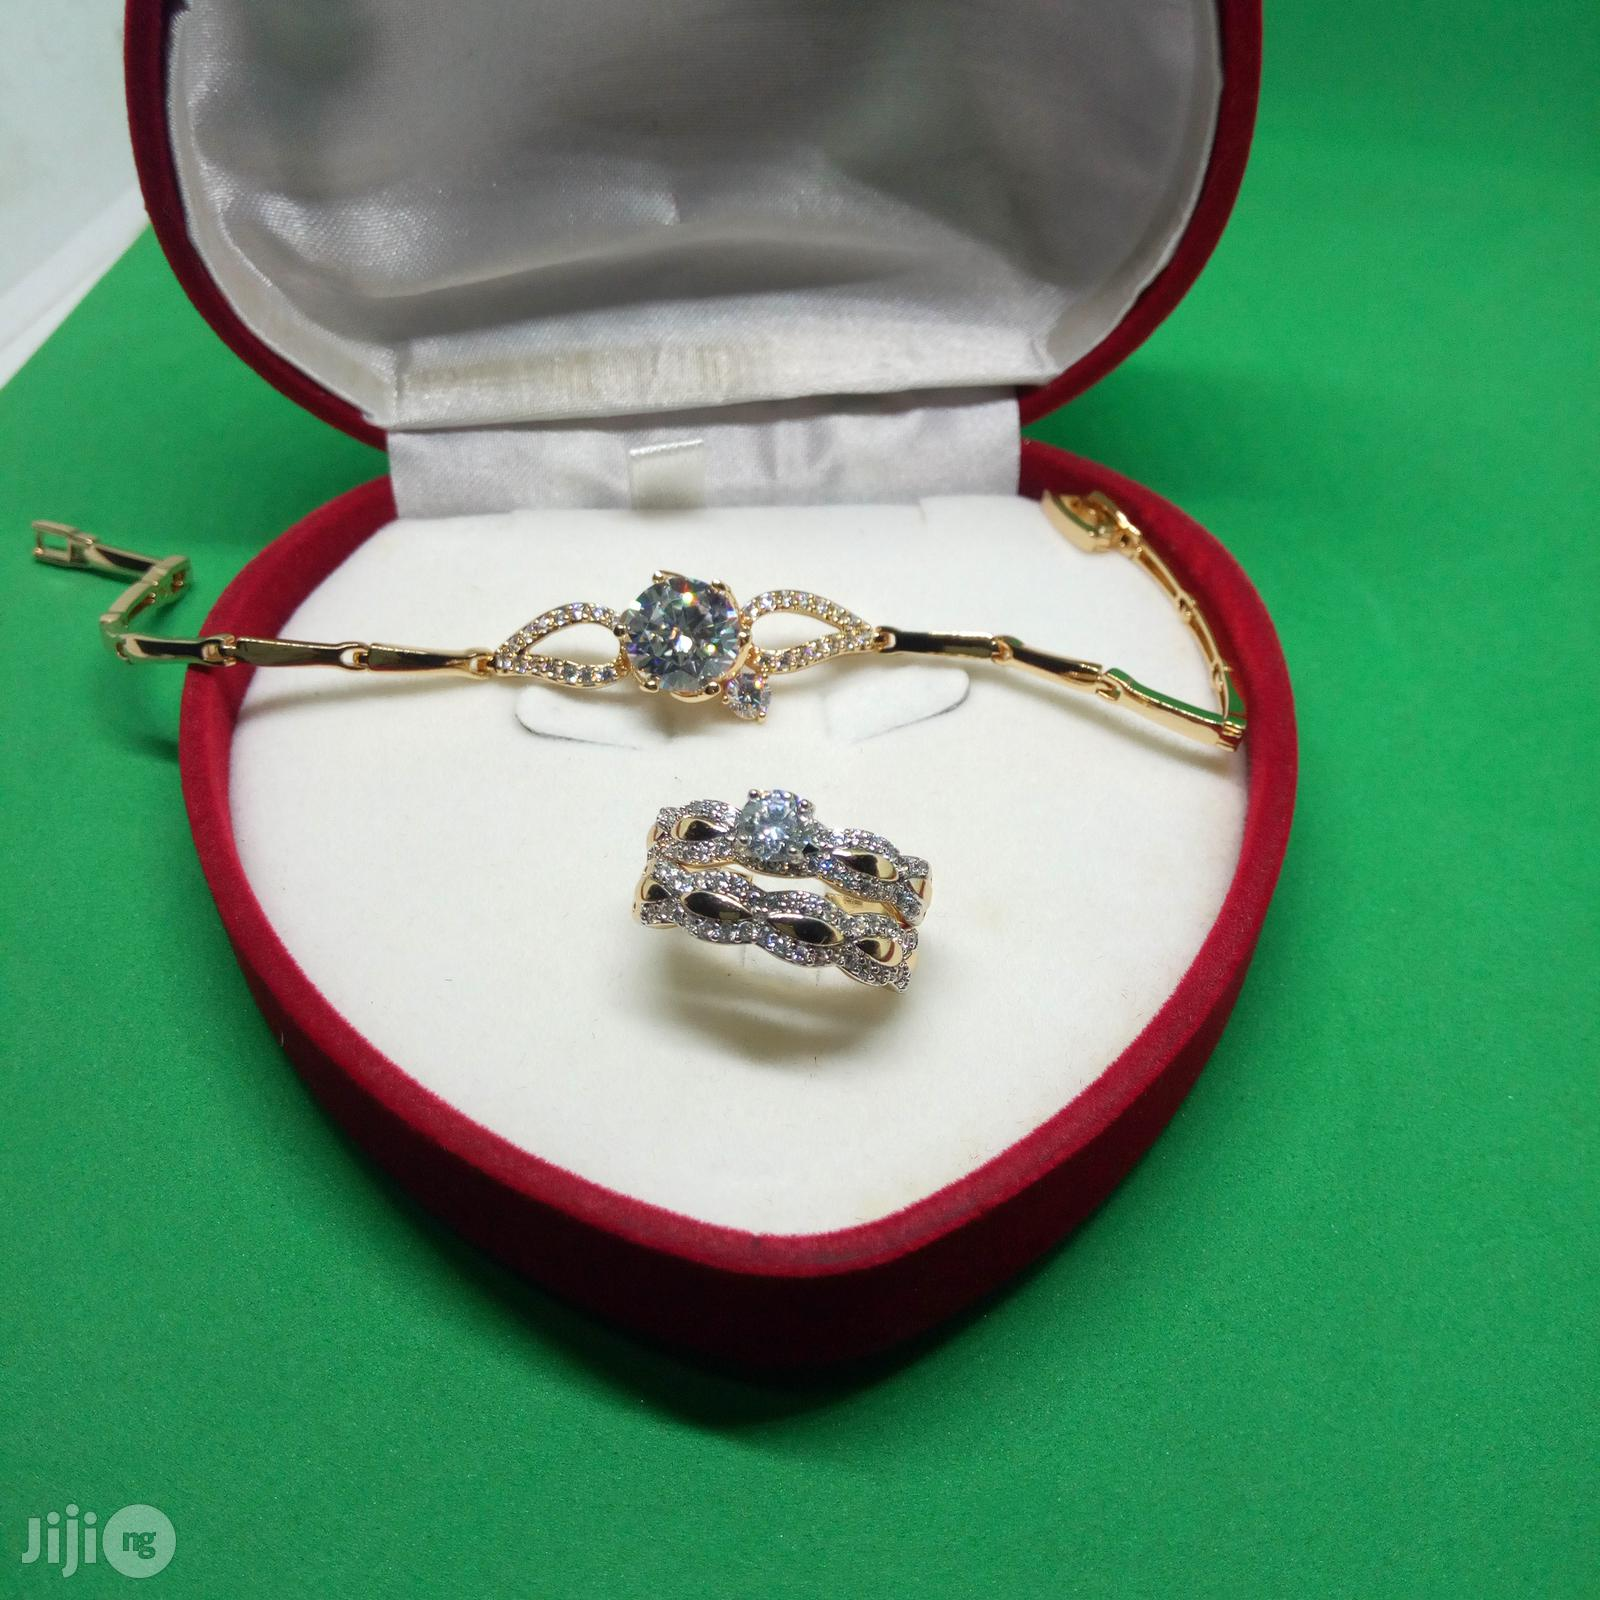 Angel Scot Engagement, Wedding Ring Hand Chain - (Silver Rose Gold)